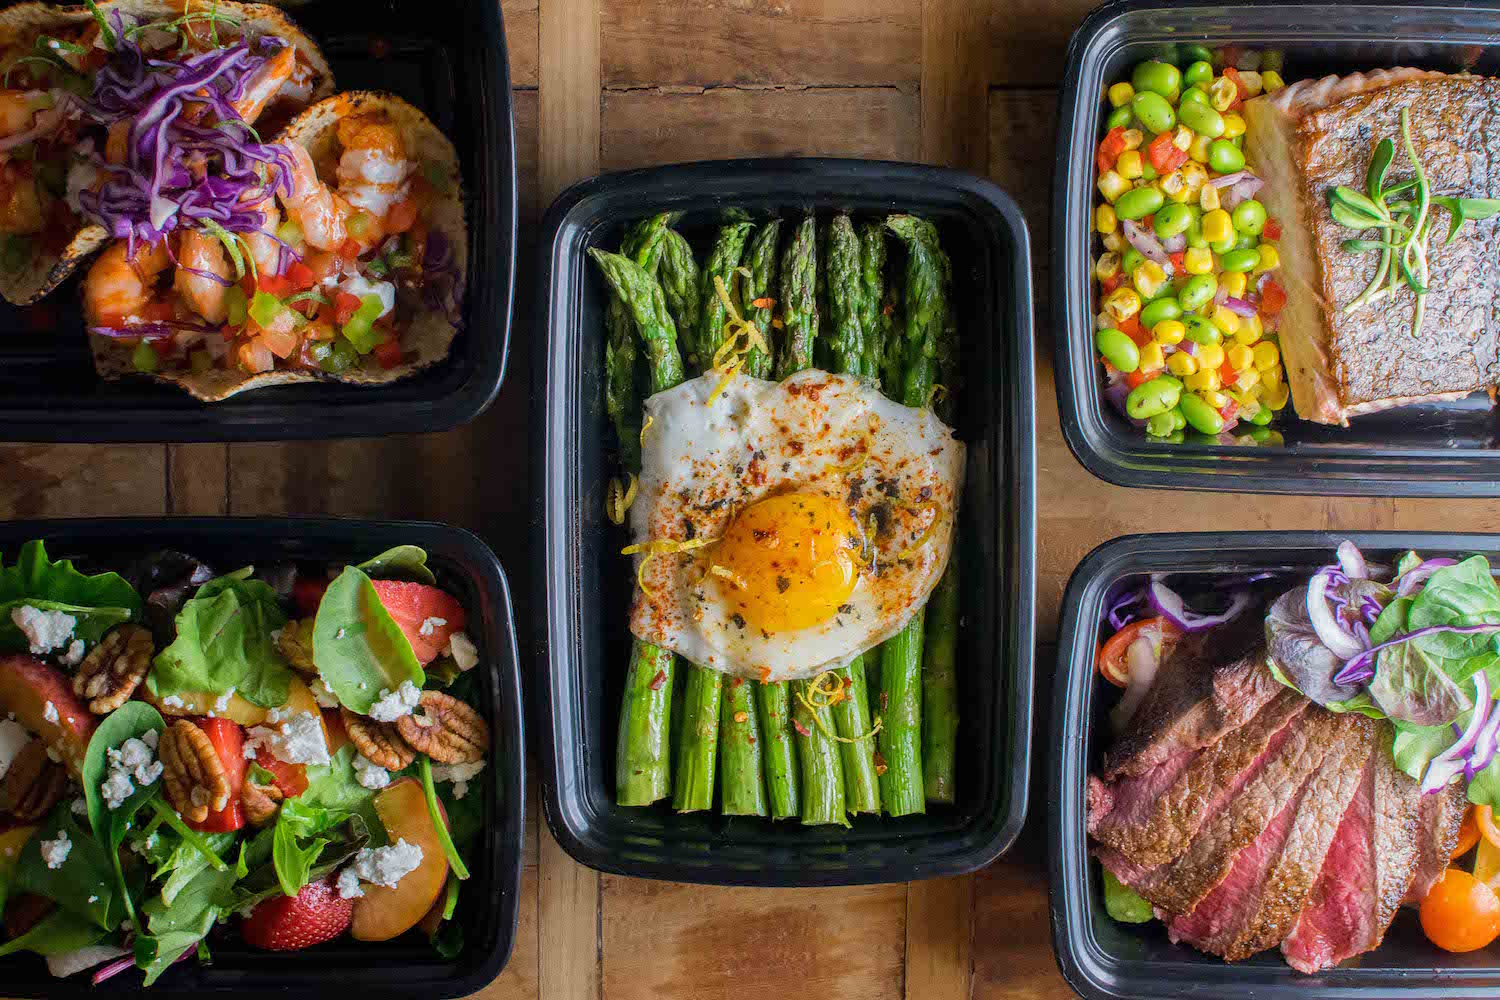 What's in your refrigerator? Why grocery stores will beat meal kit companies at their own game